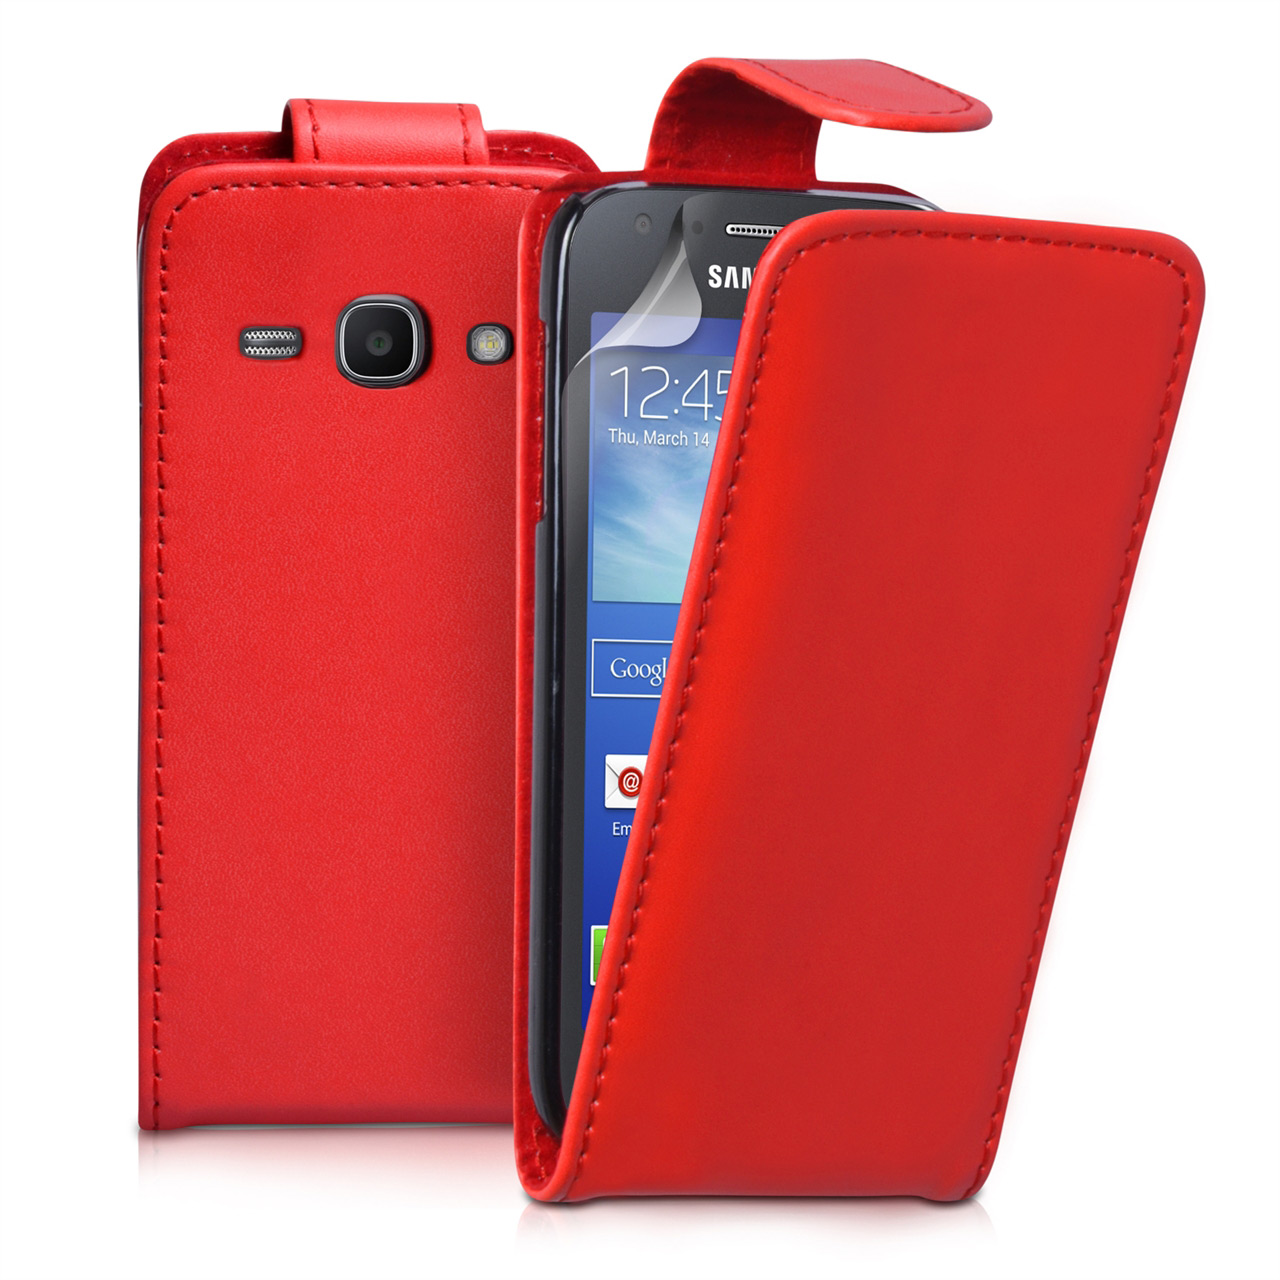 YouSave Samsung Galaxy Ace 3 Leather-Effect Flip Case - Red